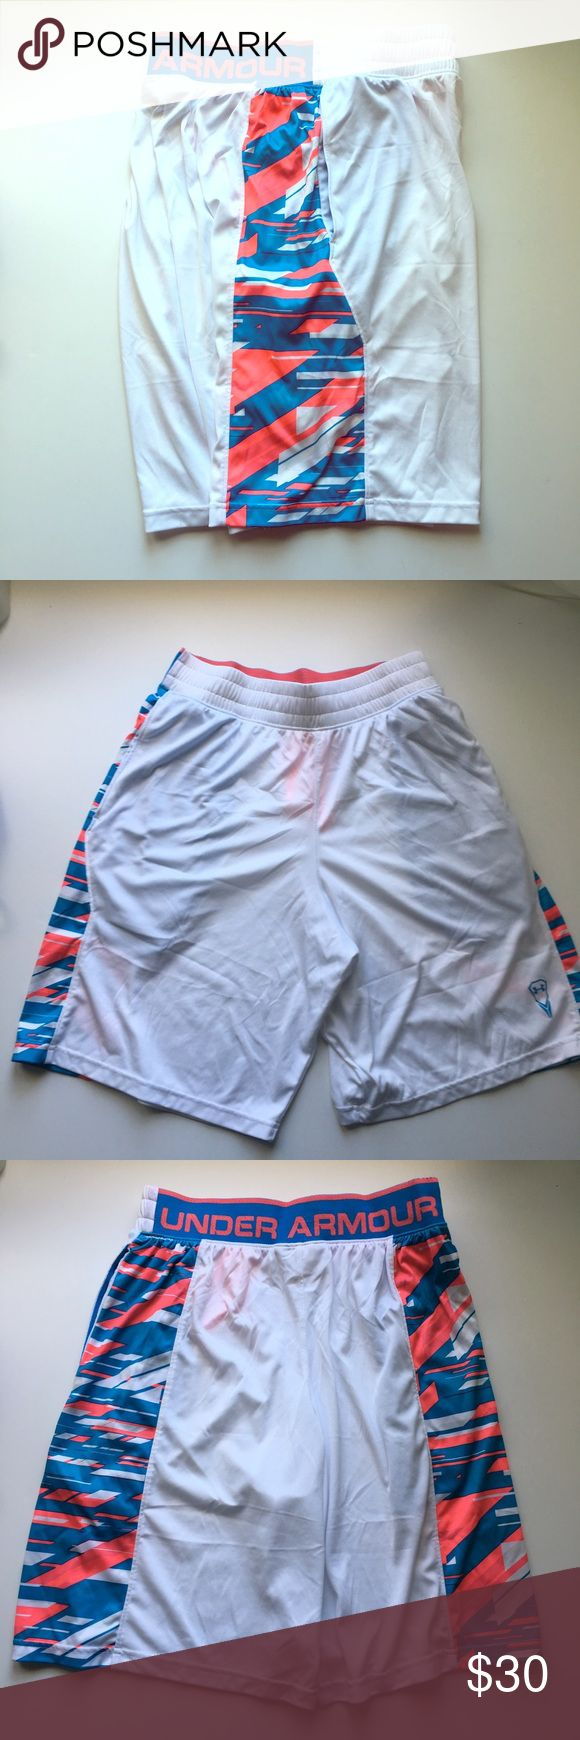 Under Armour // Multi Colored Lacrosse Shorts Fun and festive shorts from Under Armour's lacrosse line. White legs with blue and pink camouflage design on the sides. Two hip pockets. Second photo is the front and third photo is the back. 100% polyester. Have been worn, in great condition. Under Armour Shorts Athletic